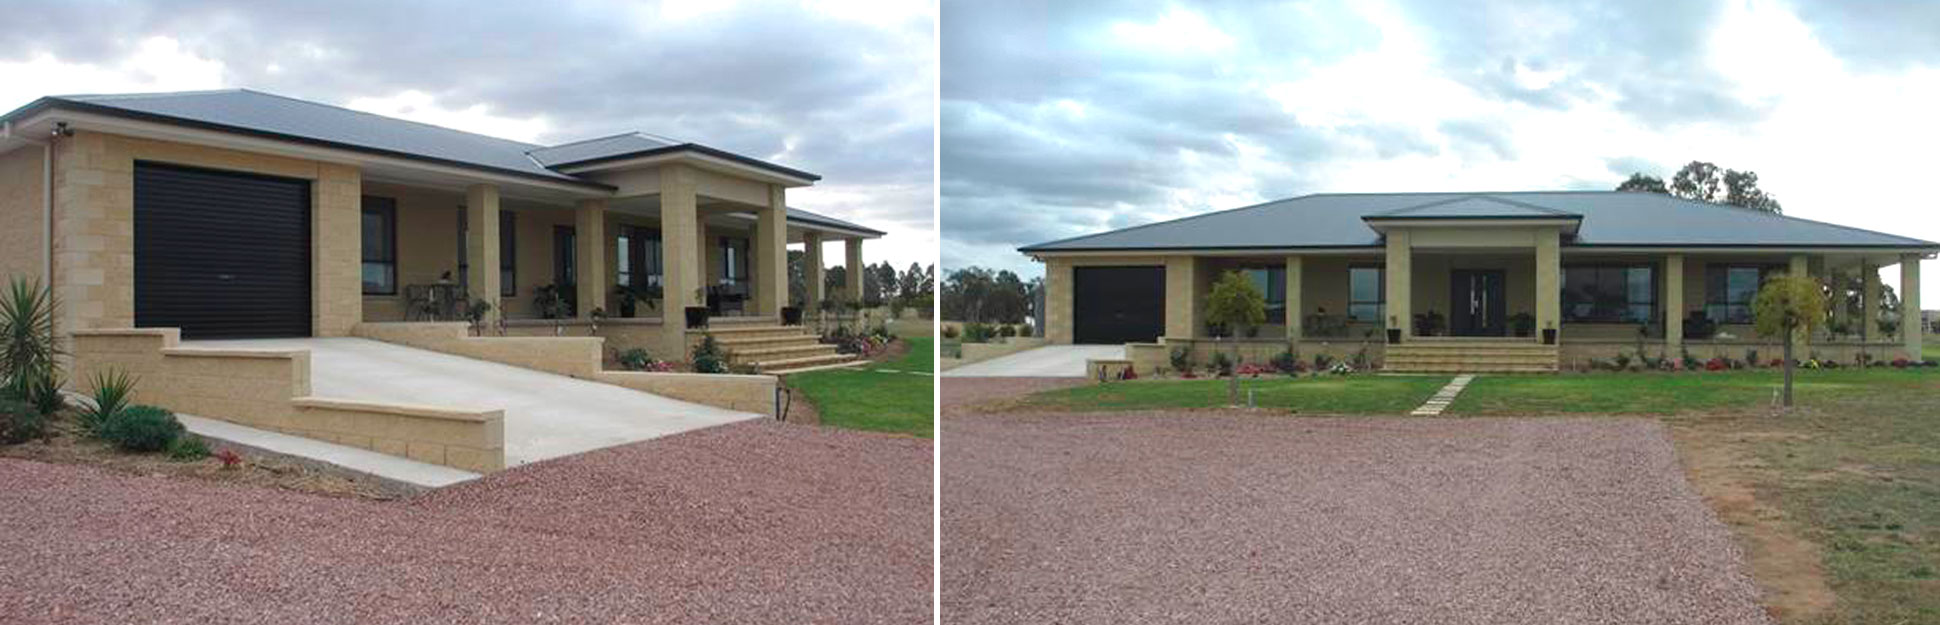 cowra-concrete-products-baker-home-grenfell-2